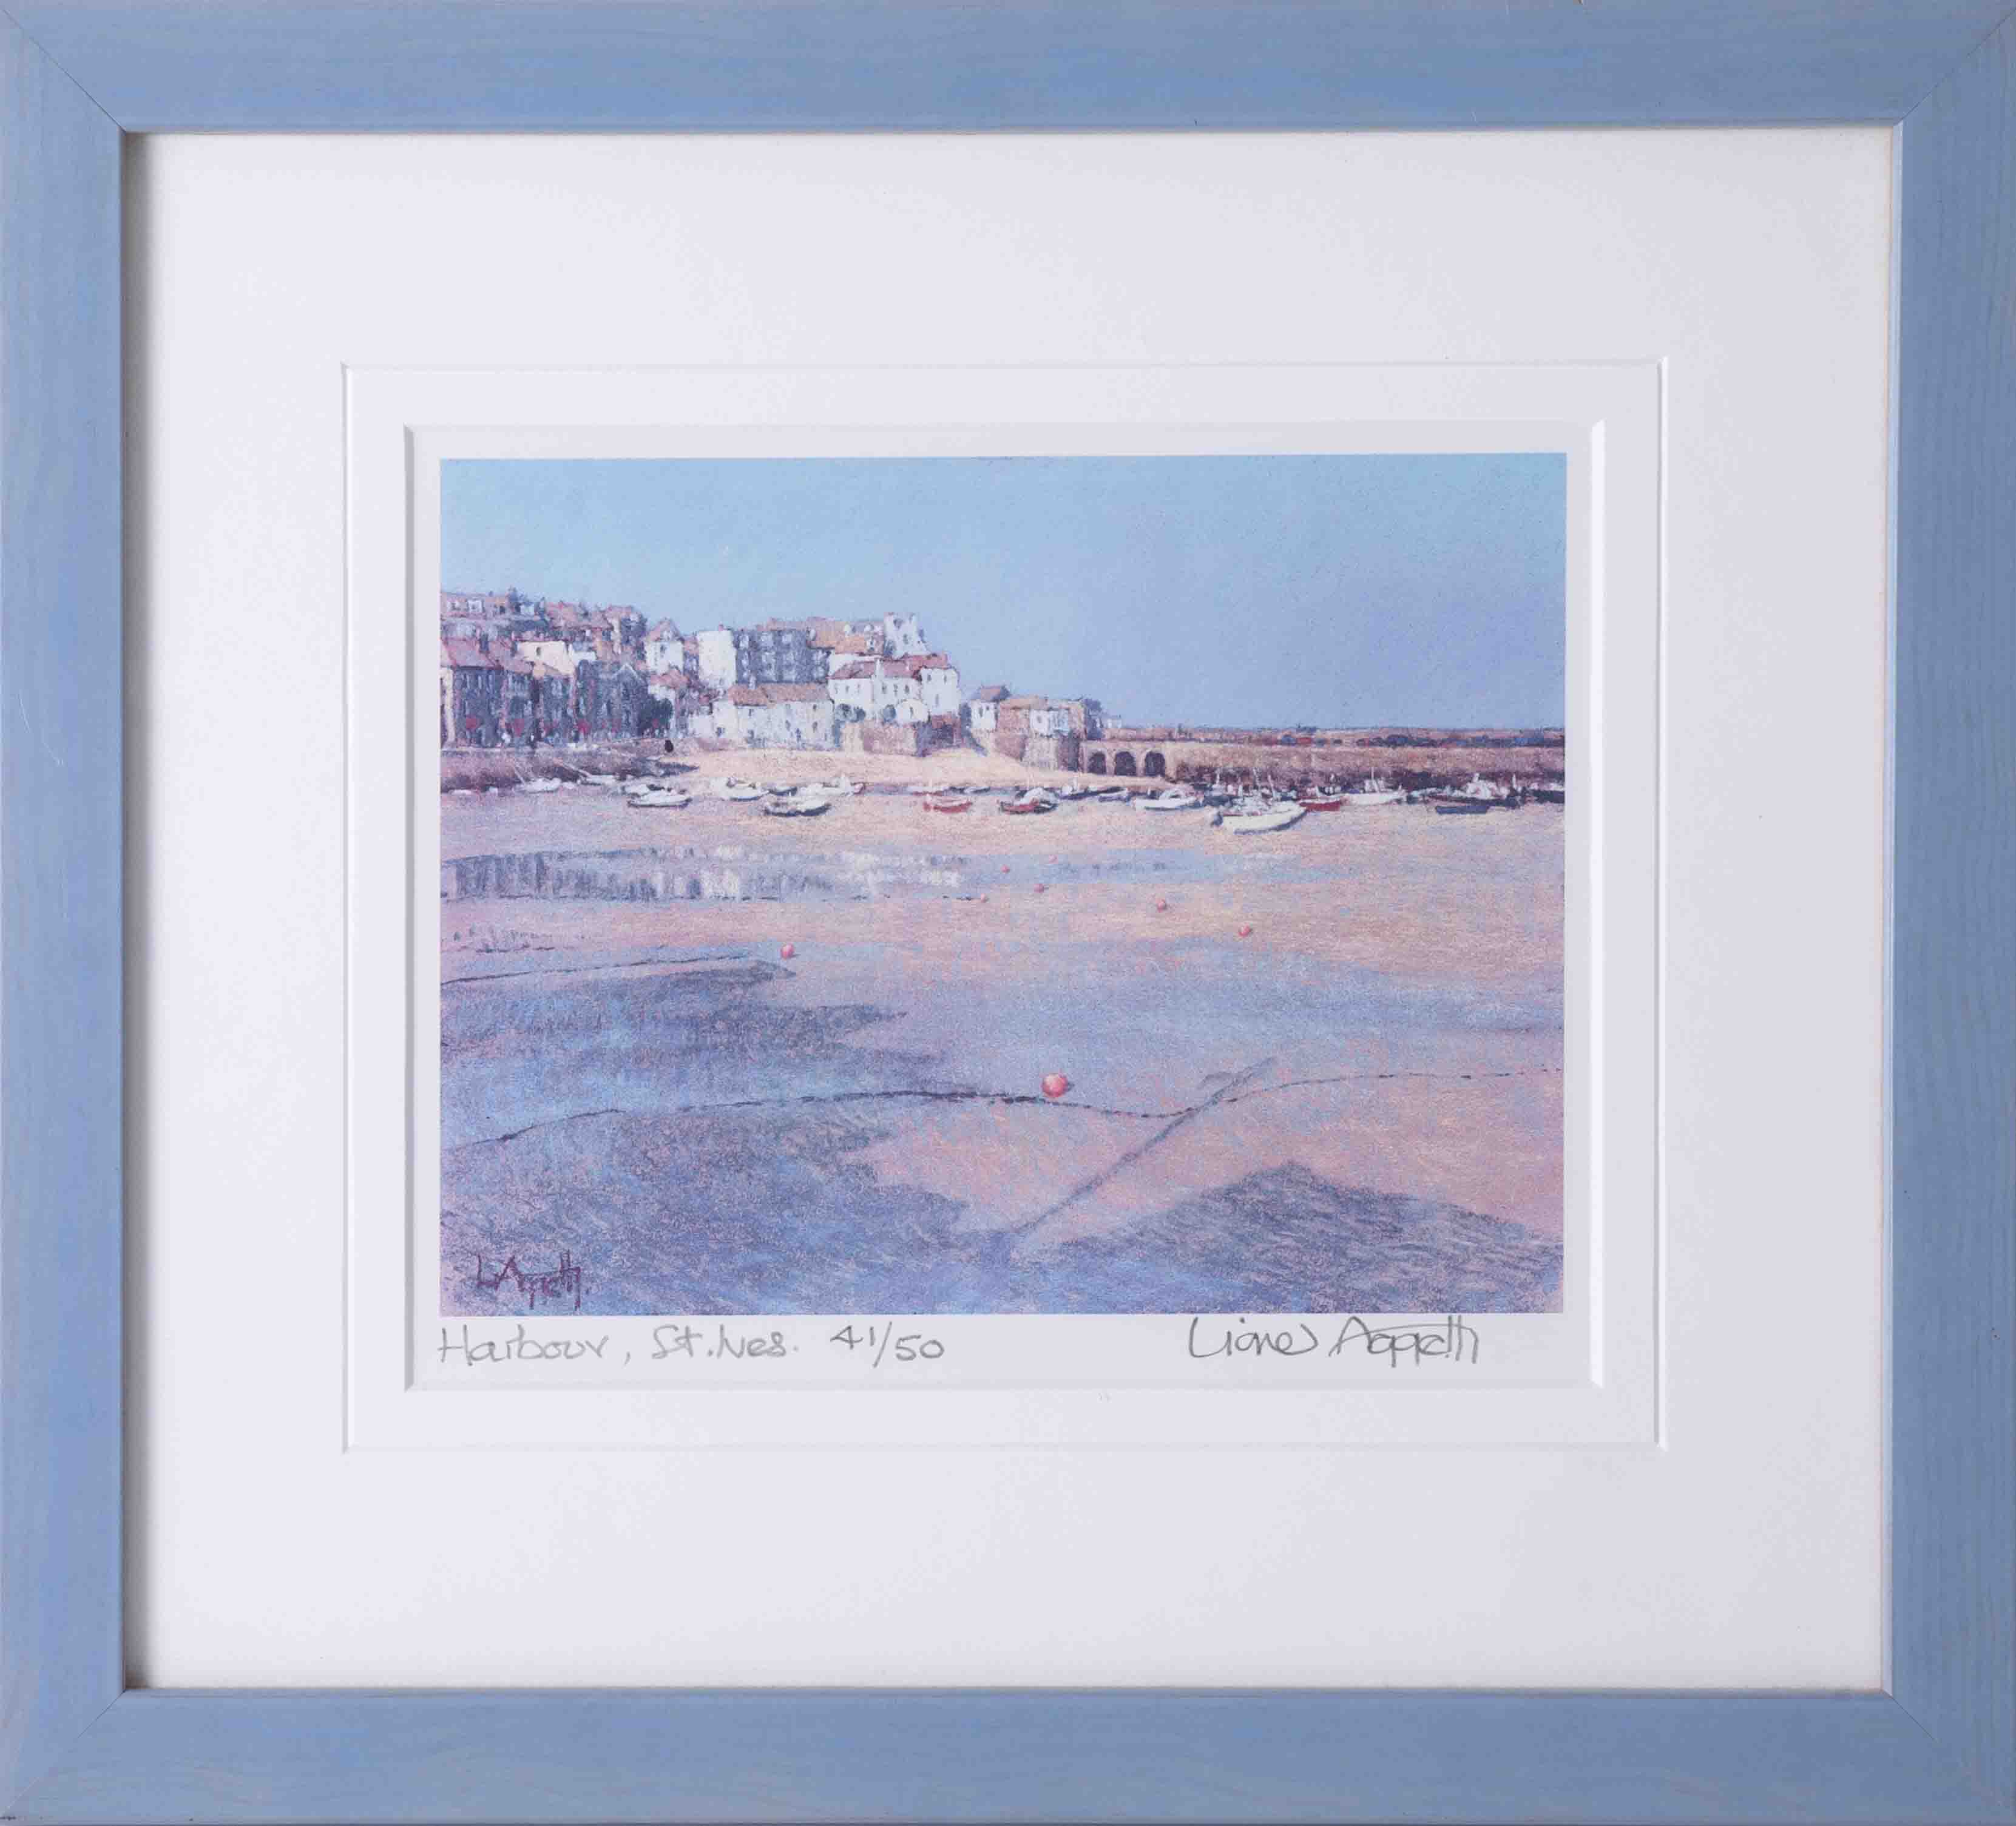 Lionel Aggetts, two limited edition prints including 'Harbour St.Ives' 41/50 and 'View From The - Image 5 of 6